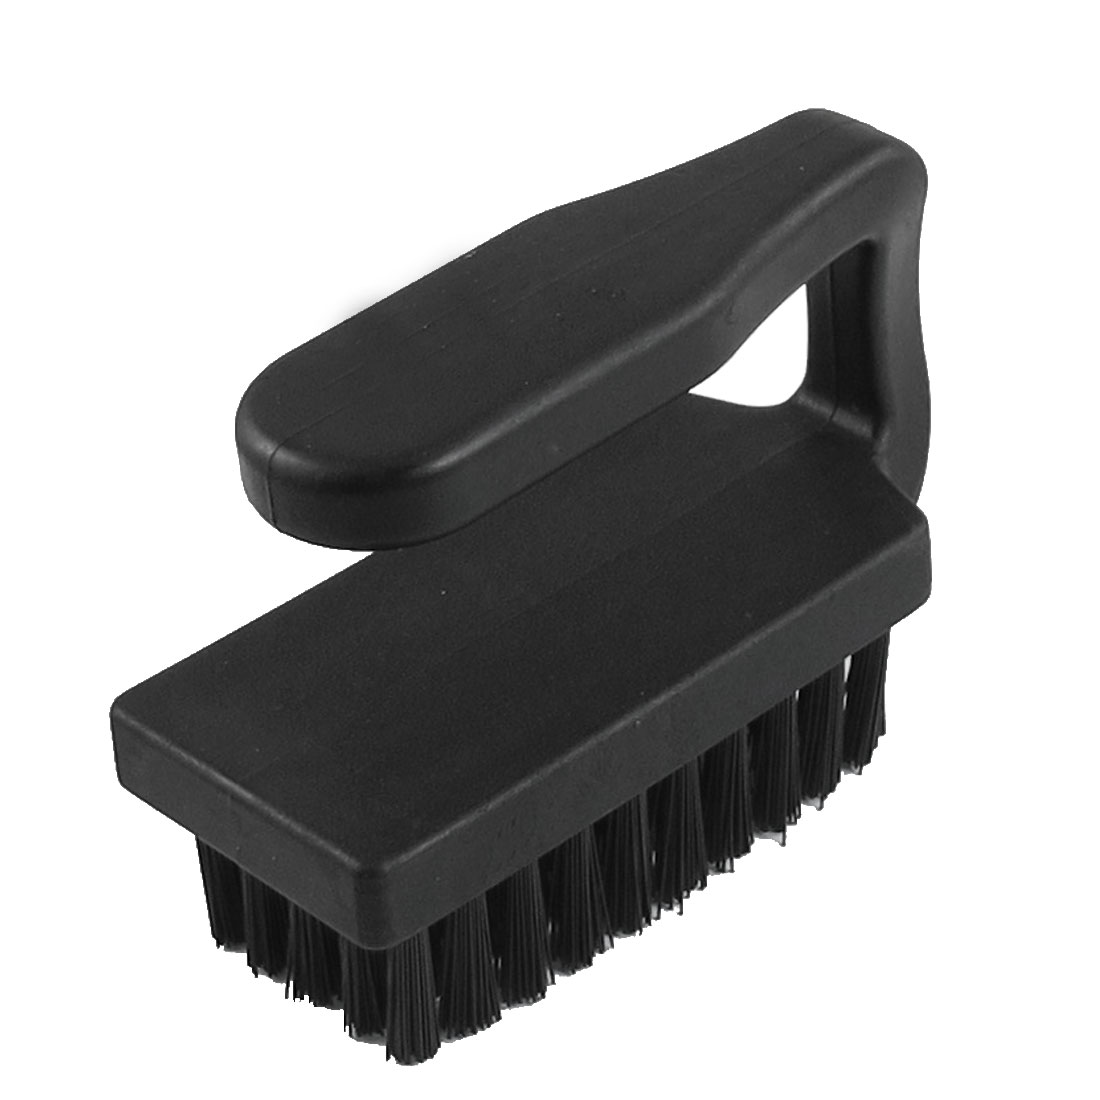 PCB Dust Cleaner Toothbrush Style Horizontal Grip Anti Static ESD Brush Black